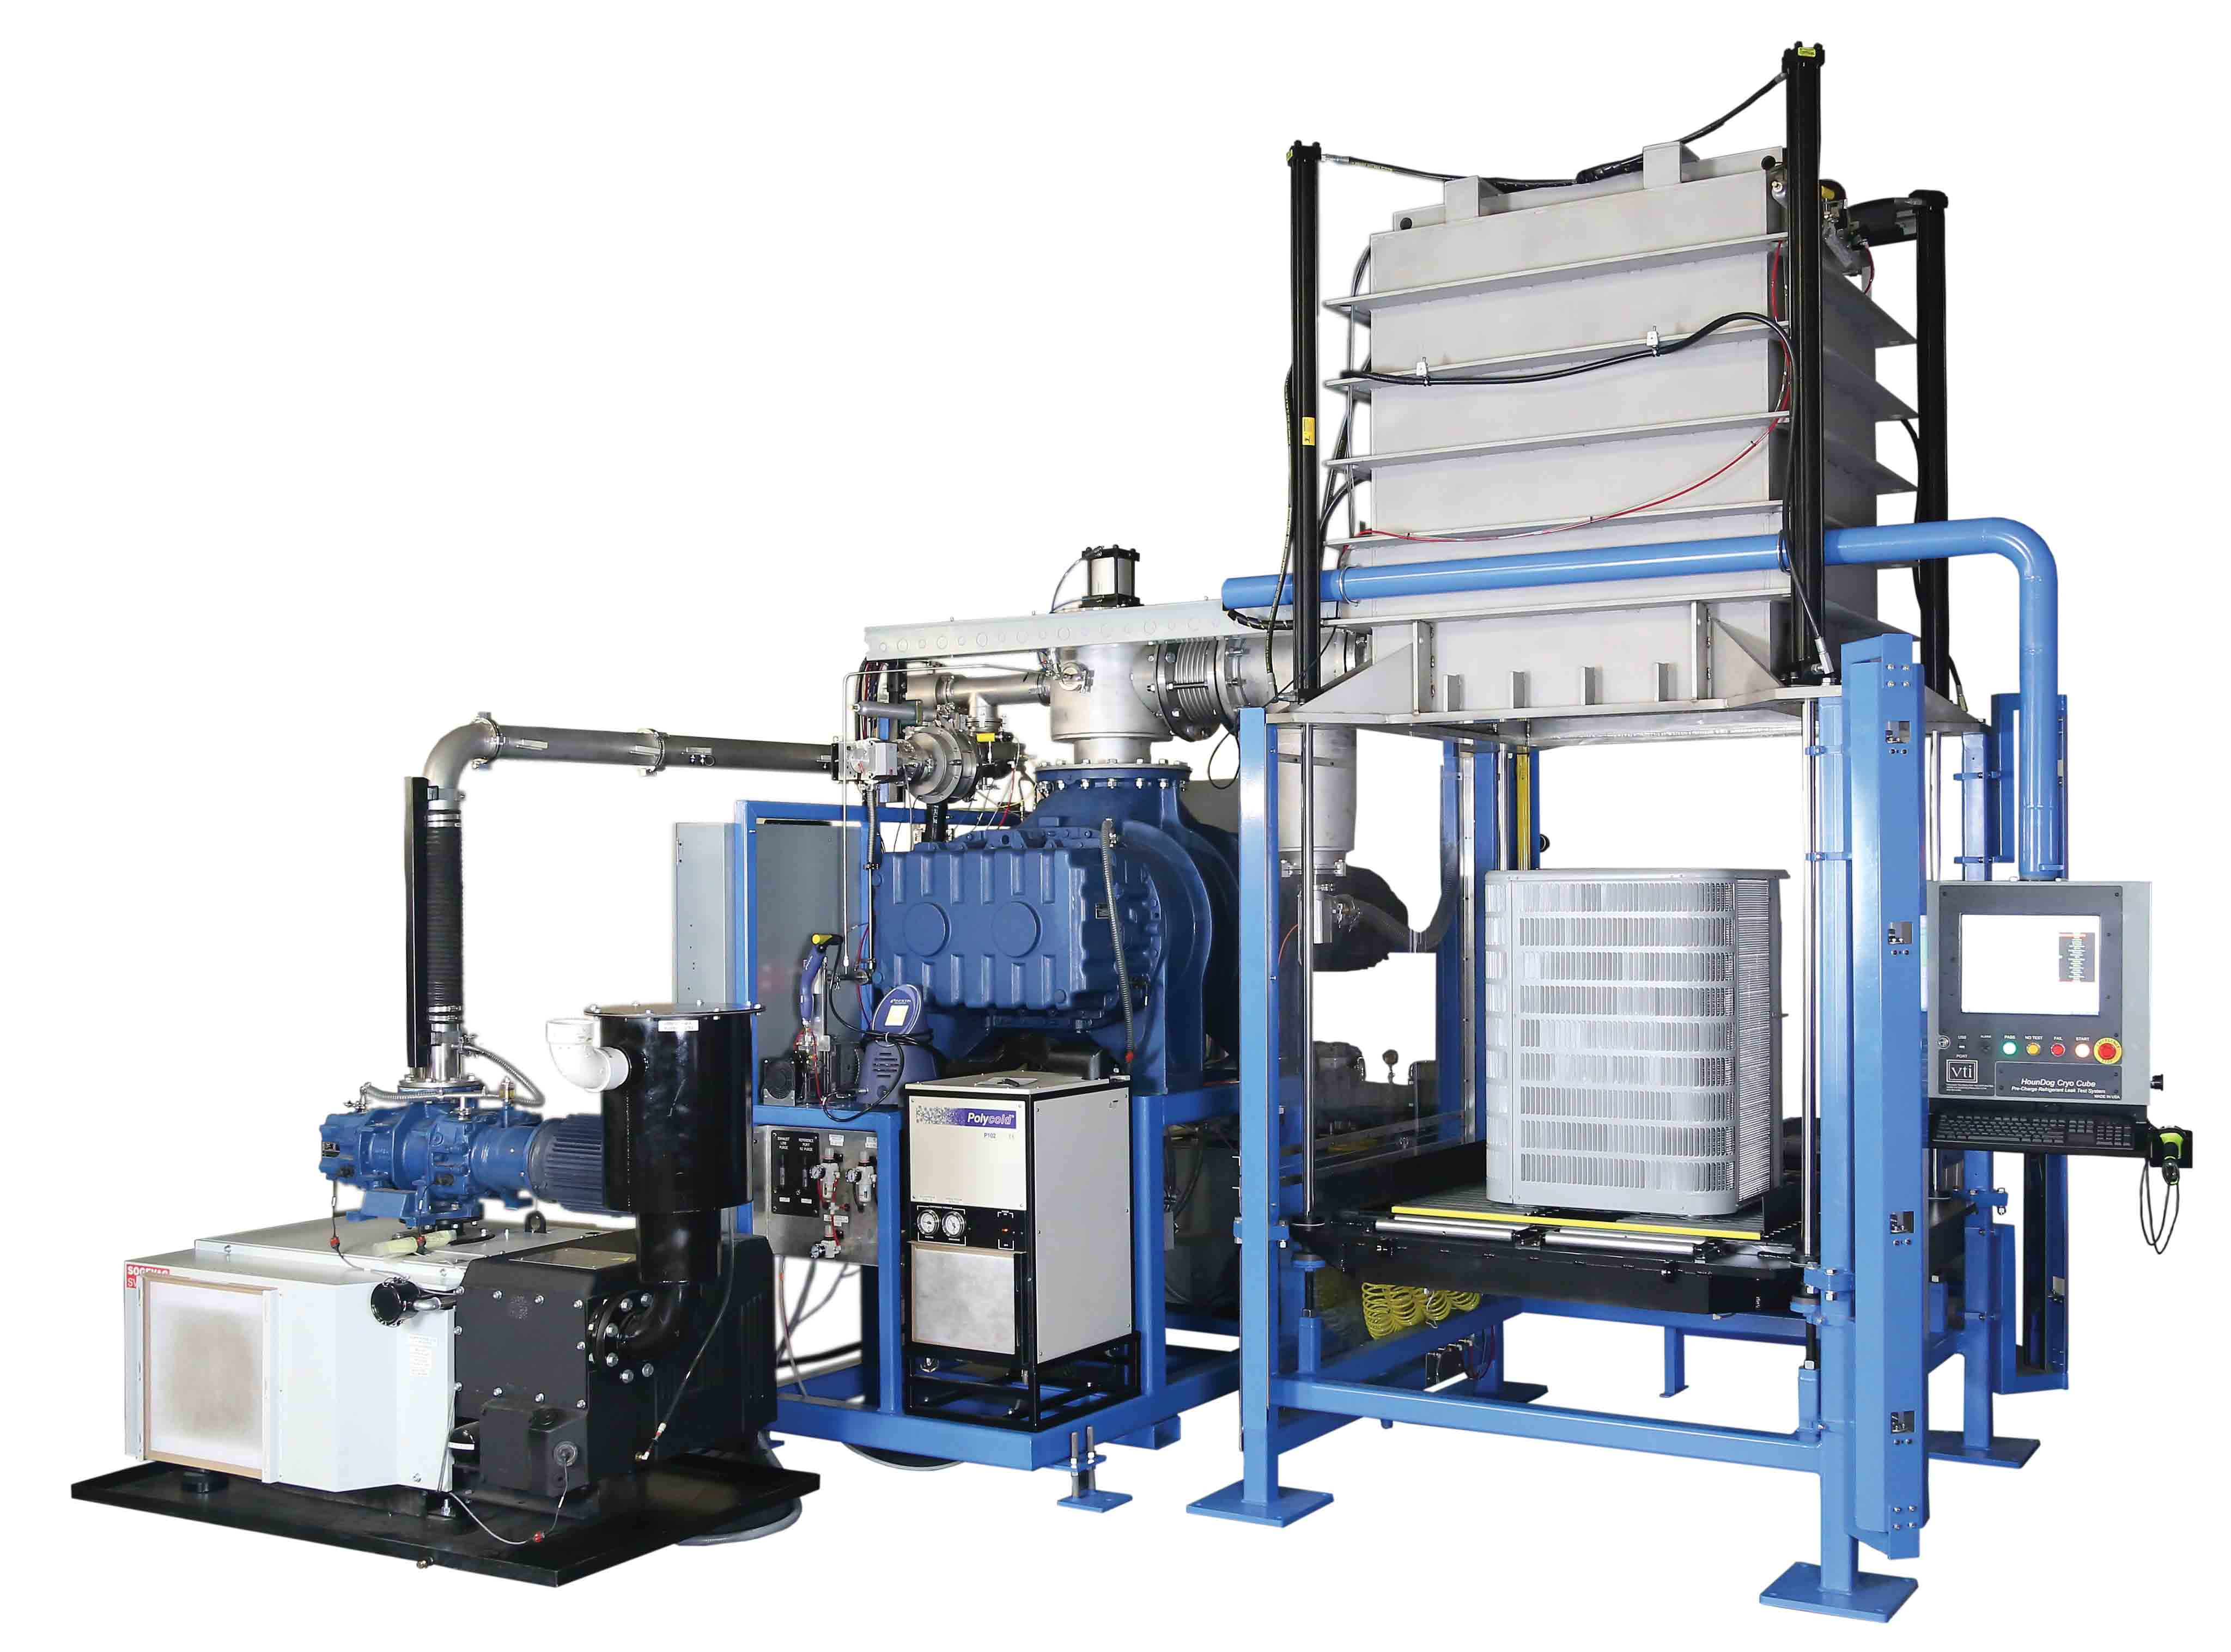 VTI's HounDog Cryocube Pre-Charged Refrigerant LTS for Condensing Unit Manufacturing